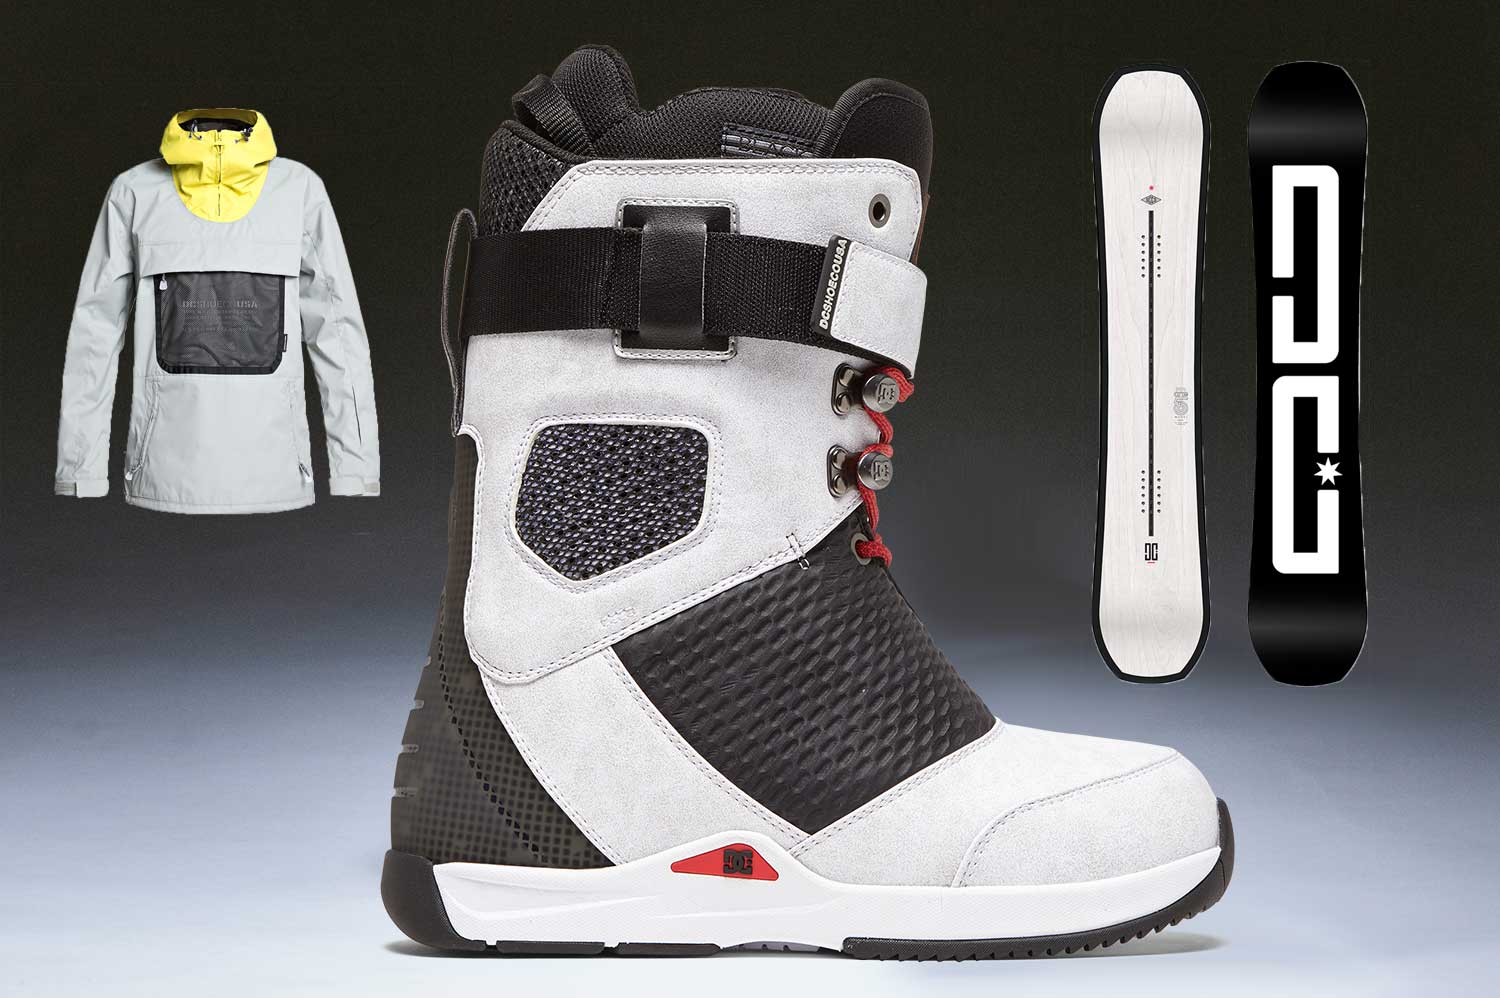 457e21a1ae0 2020 Vision Snowboard Gear Preview: DC's Latest Boards, Boots, and ...